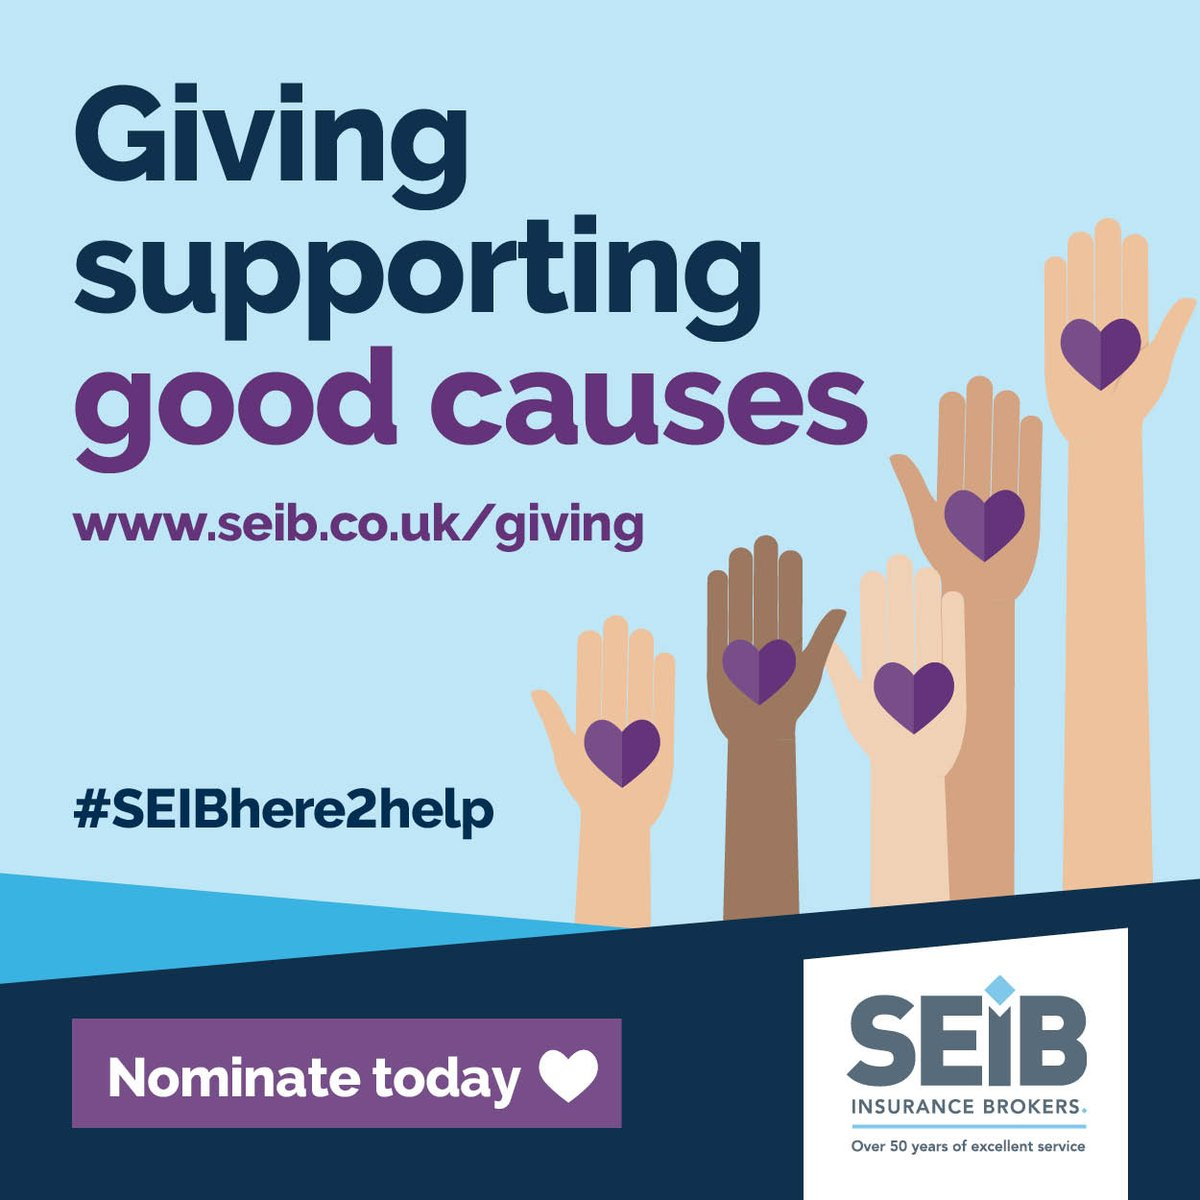 Just one week to go until nominations close for the @seib Insurance Brokers Charity Awards 2021. Please help us make sure #TeamMintridge gets through to the final vote by nominating us now at  #SEIBHere2Help